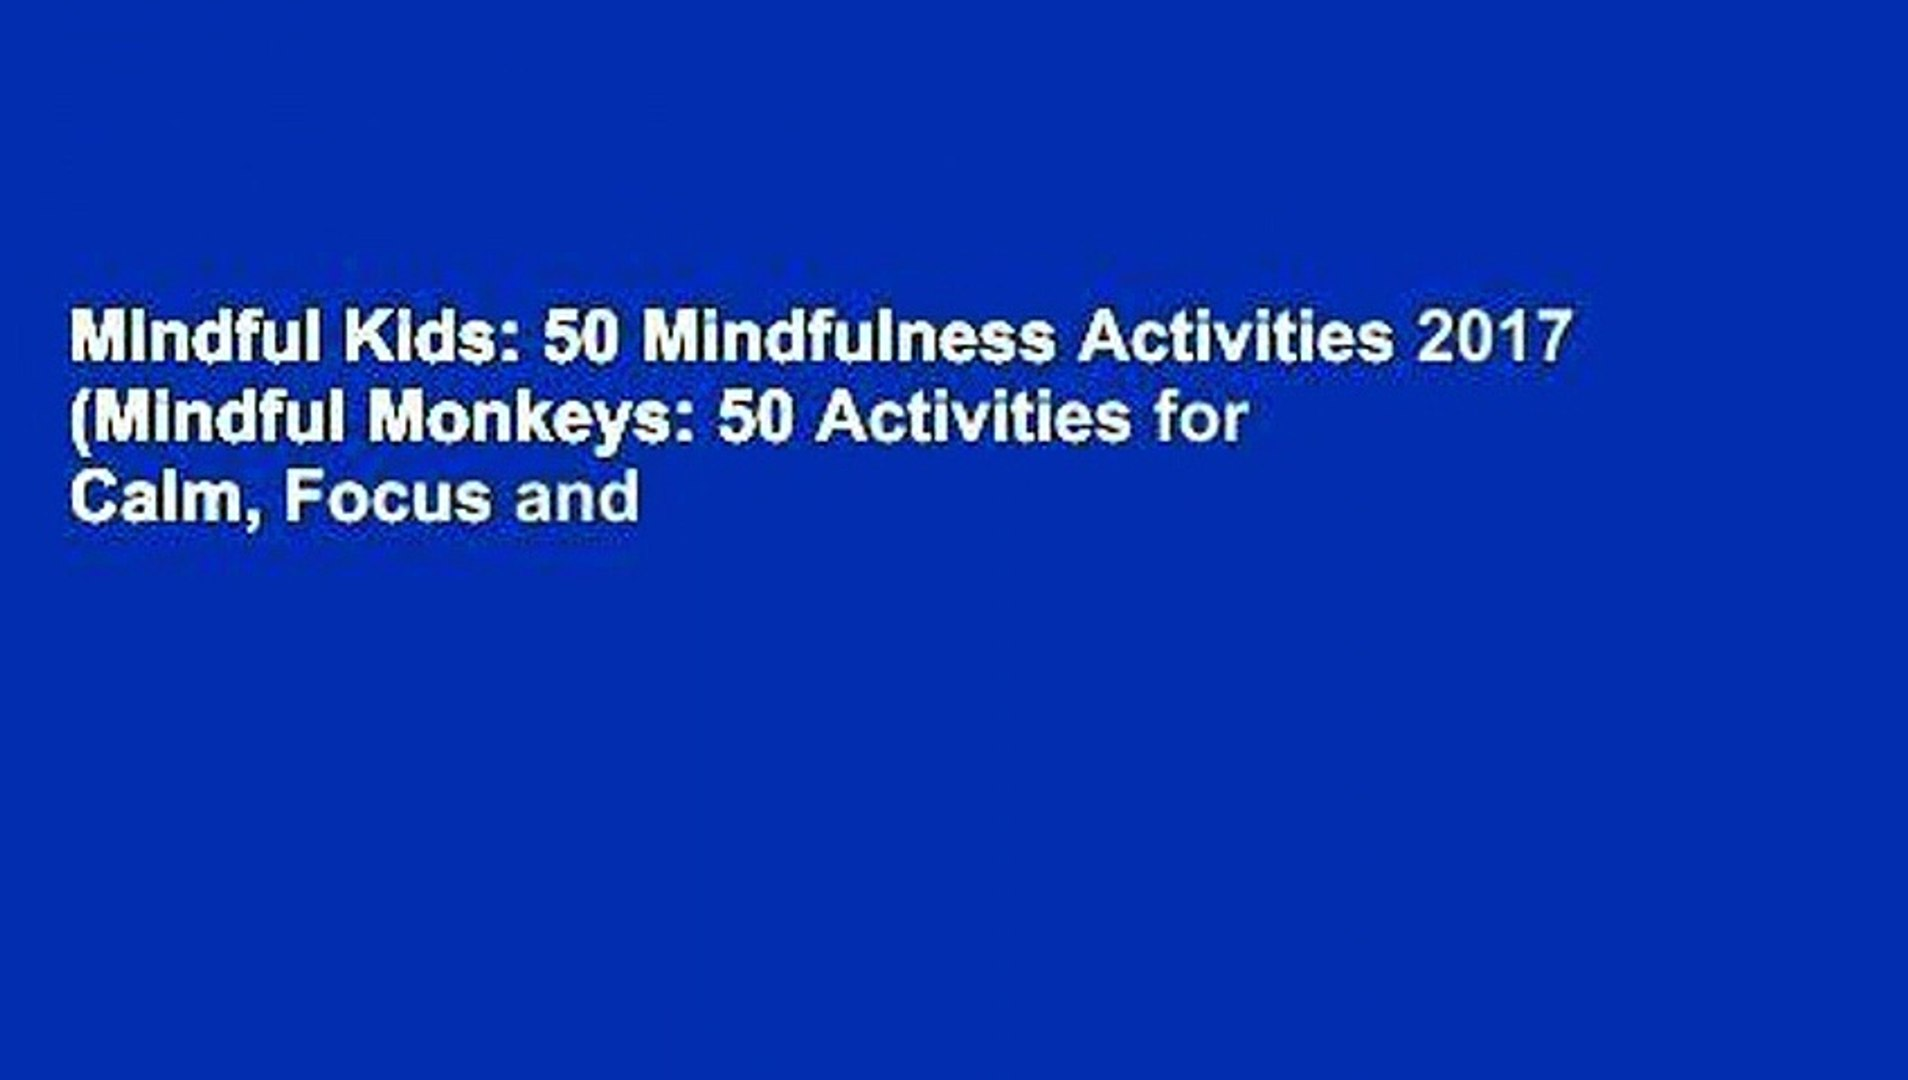 Mindful Kids: 50 Mindfulness Activities 2017 (Mindful Monkeys: 50 Activities for Calm, Focus and